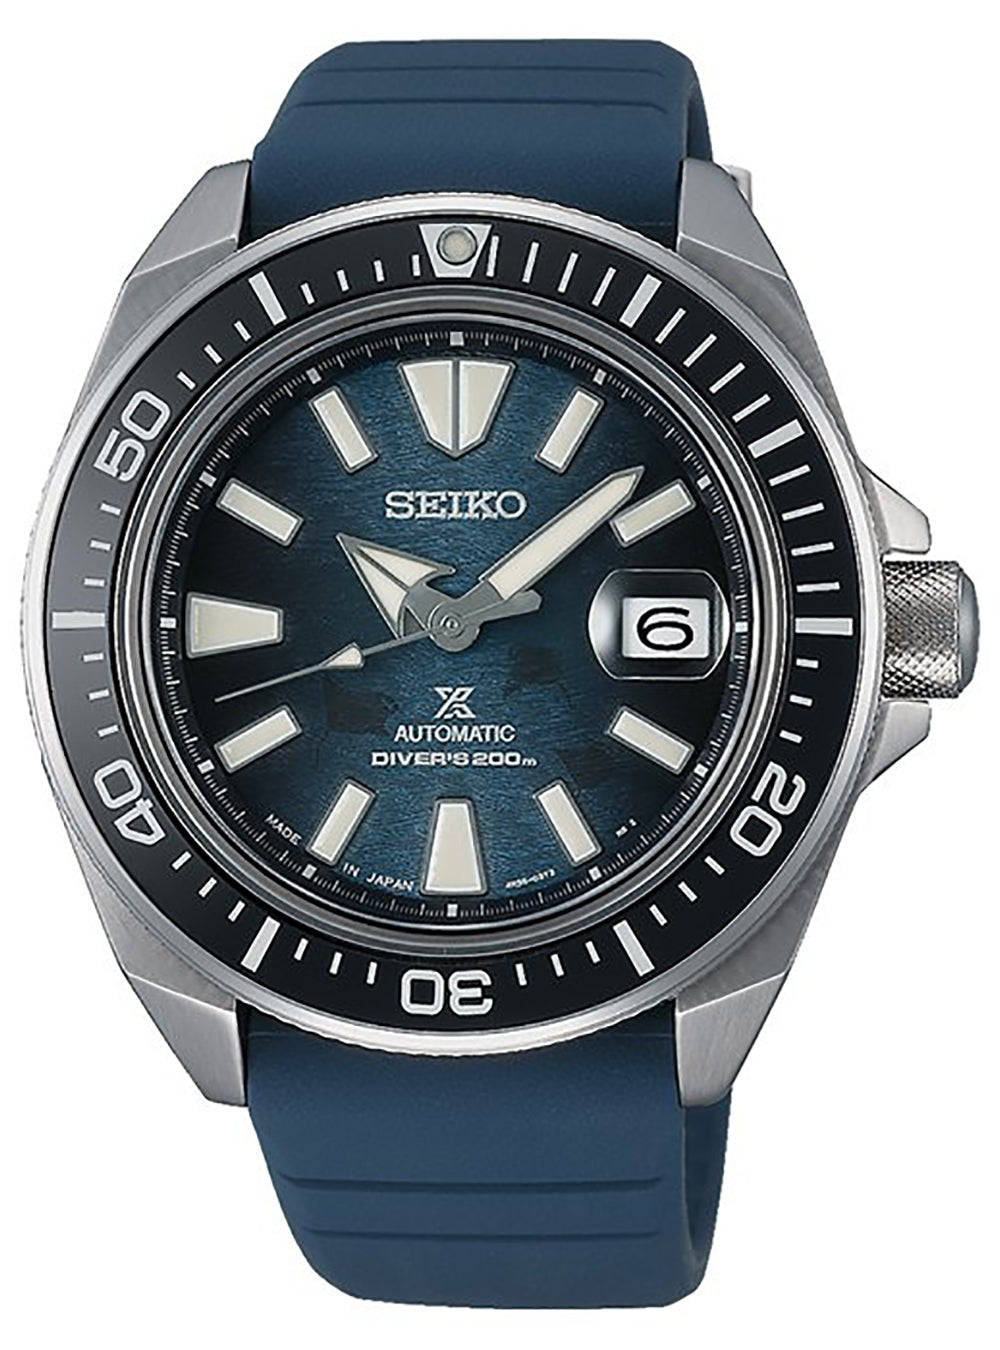 SEIKO PROSPEX DIVER SCUBA SAVE THE OCEAN SBDY081 MADE IN JAPAN LIMITED EDITION JDM